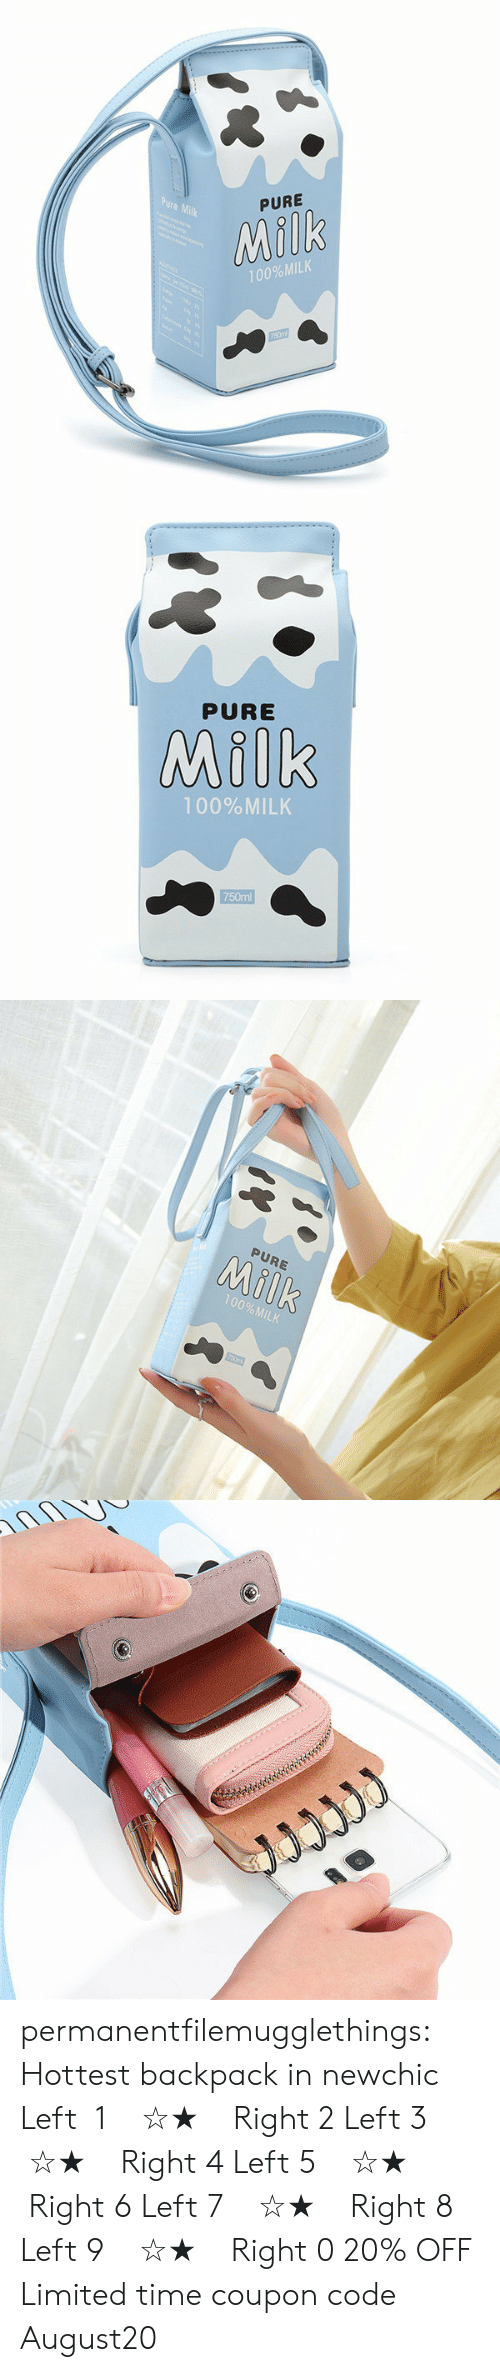 Tumblr, Blog, and Limited: Pure Milk  PURE  Milk  100%MILK  750ml   PURE  Milk  100%MILK  750ml   PURE  Milk  100%MILK  750m   JJJww permanentfilemugglethings: Hottest backpack in newchic  Left 1  ☆★  Right 2   Left 3  ☆★  Right 4   Left 5  ☆★  Right 6   Left 7  ☆★  Right 8   Left 9  ☆★  Right 0  20% OFF Limited time coupon code : August20